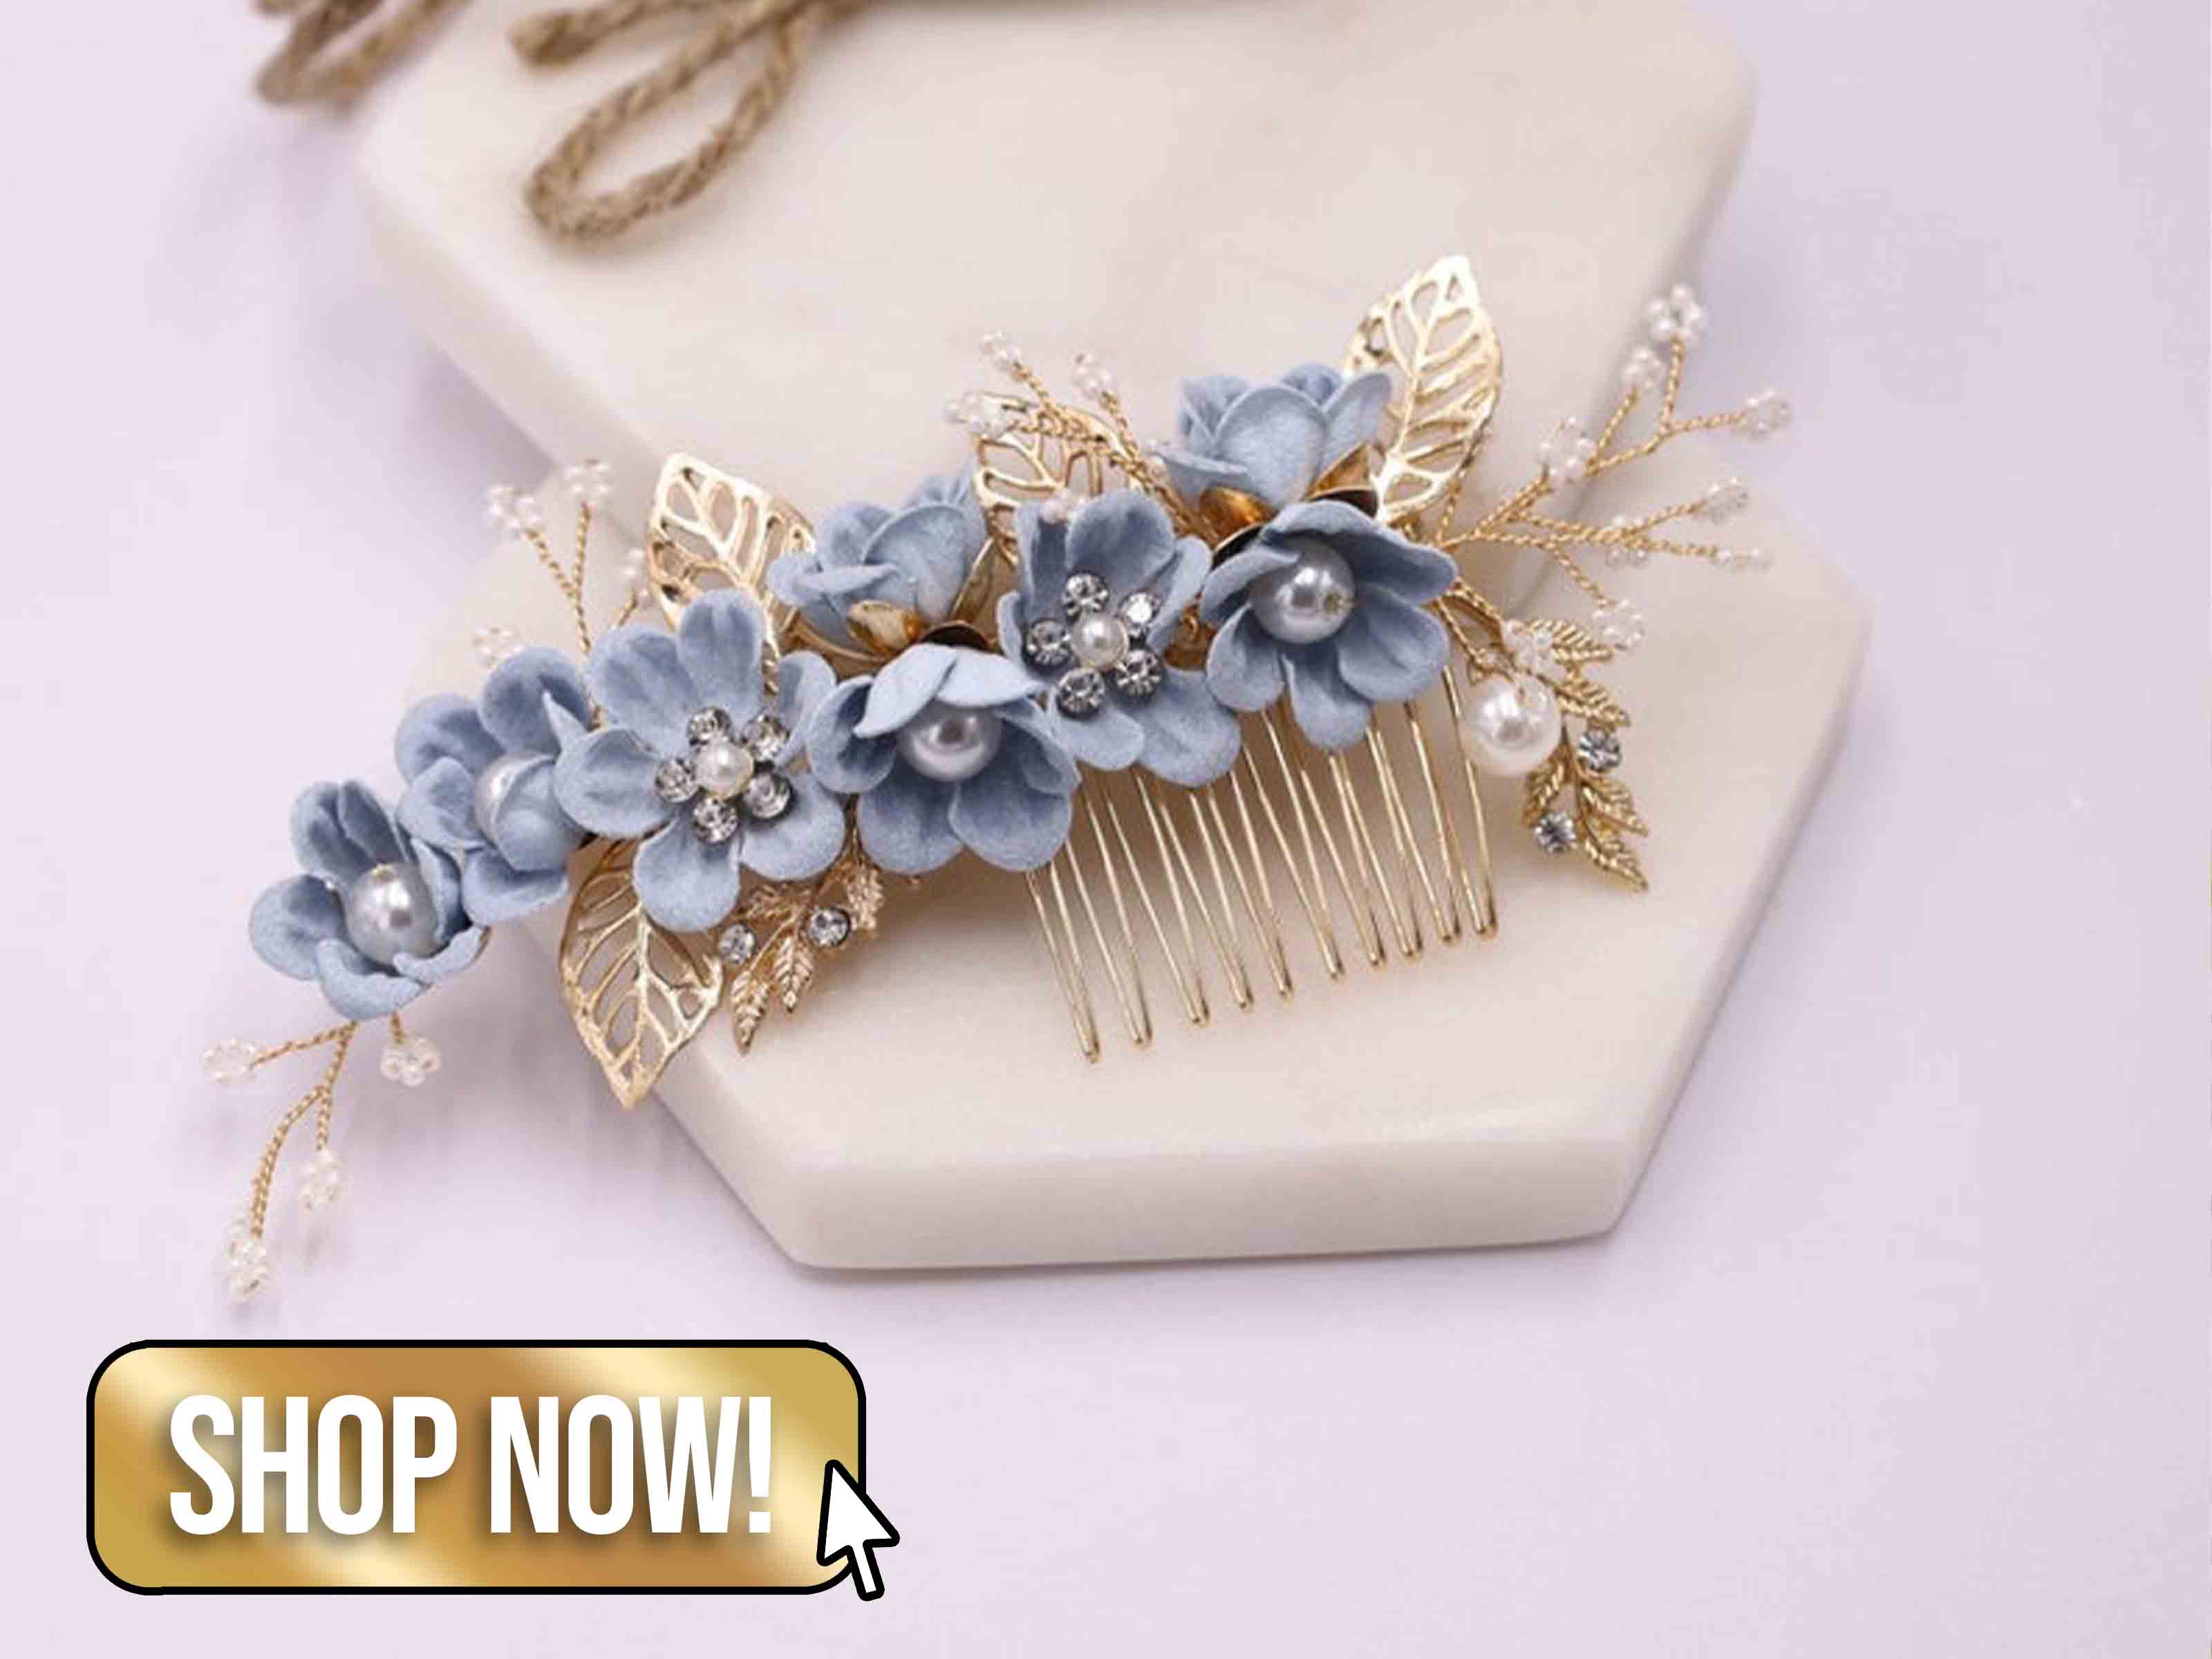 Bridal Hair Piece - SymilaAccessories